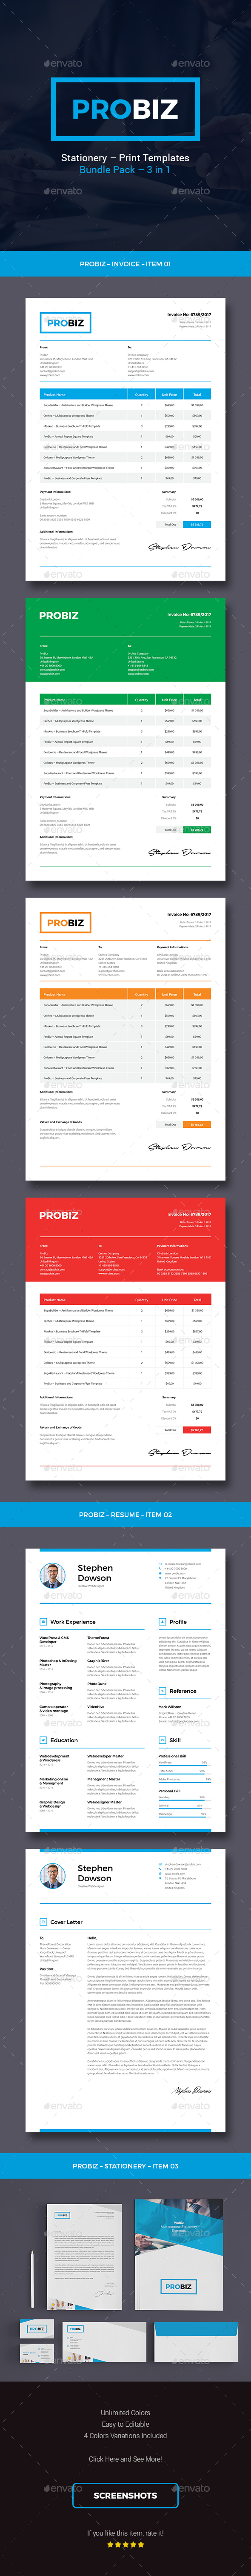 ProBiz – Business and Corporate Stationery Bundle - Stationery Print Templates